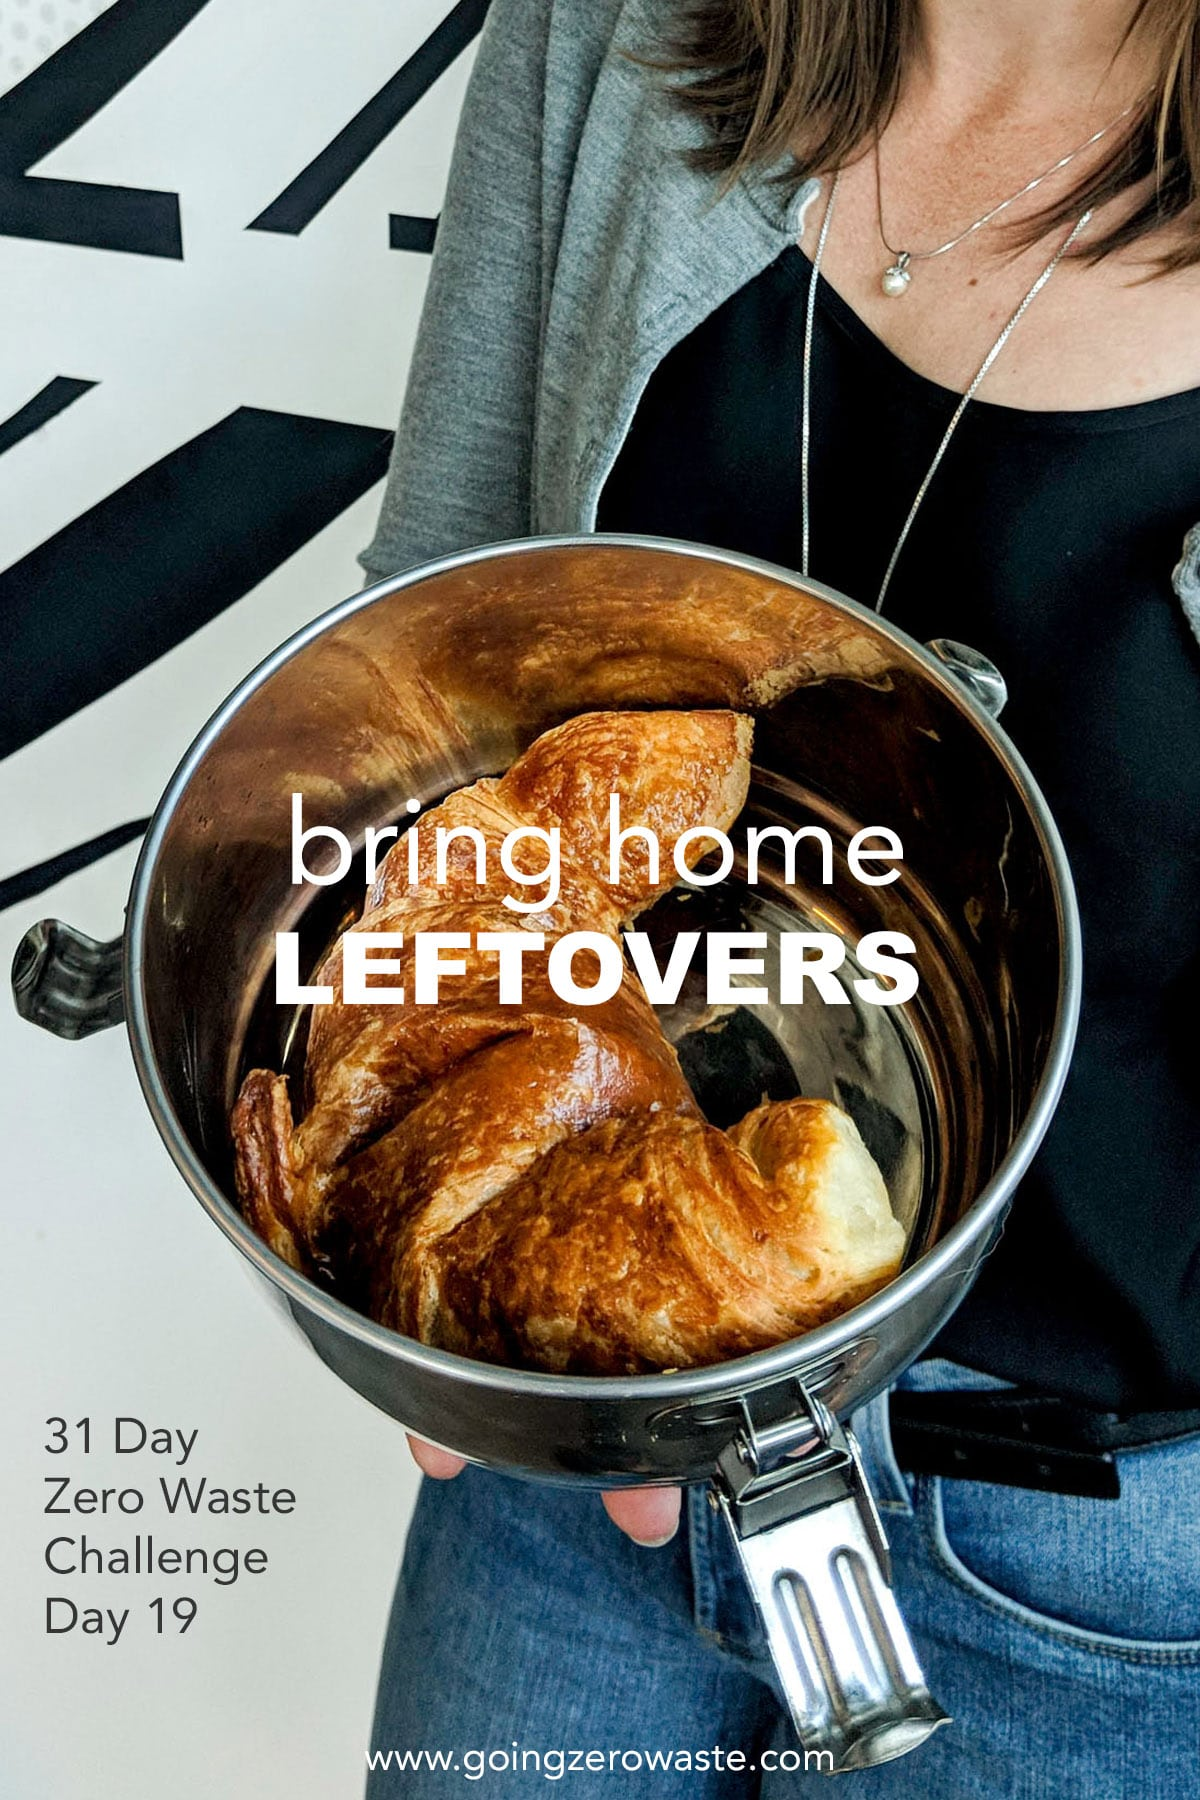 Bring Home Leftovers - Day 19 of the Zero Waste Challenge